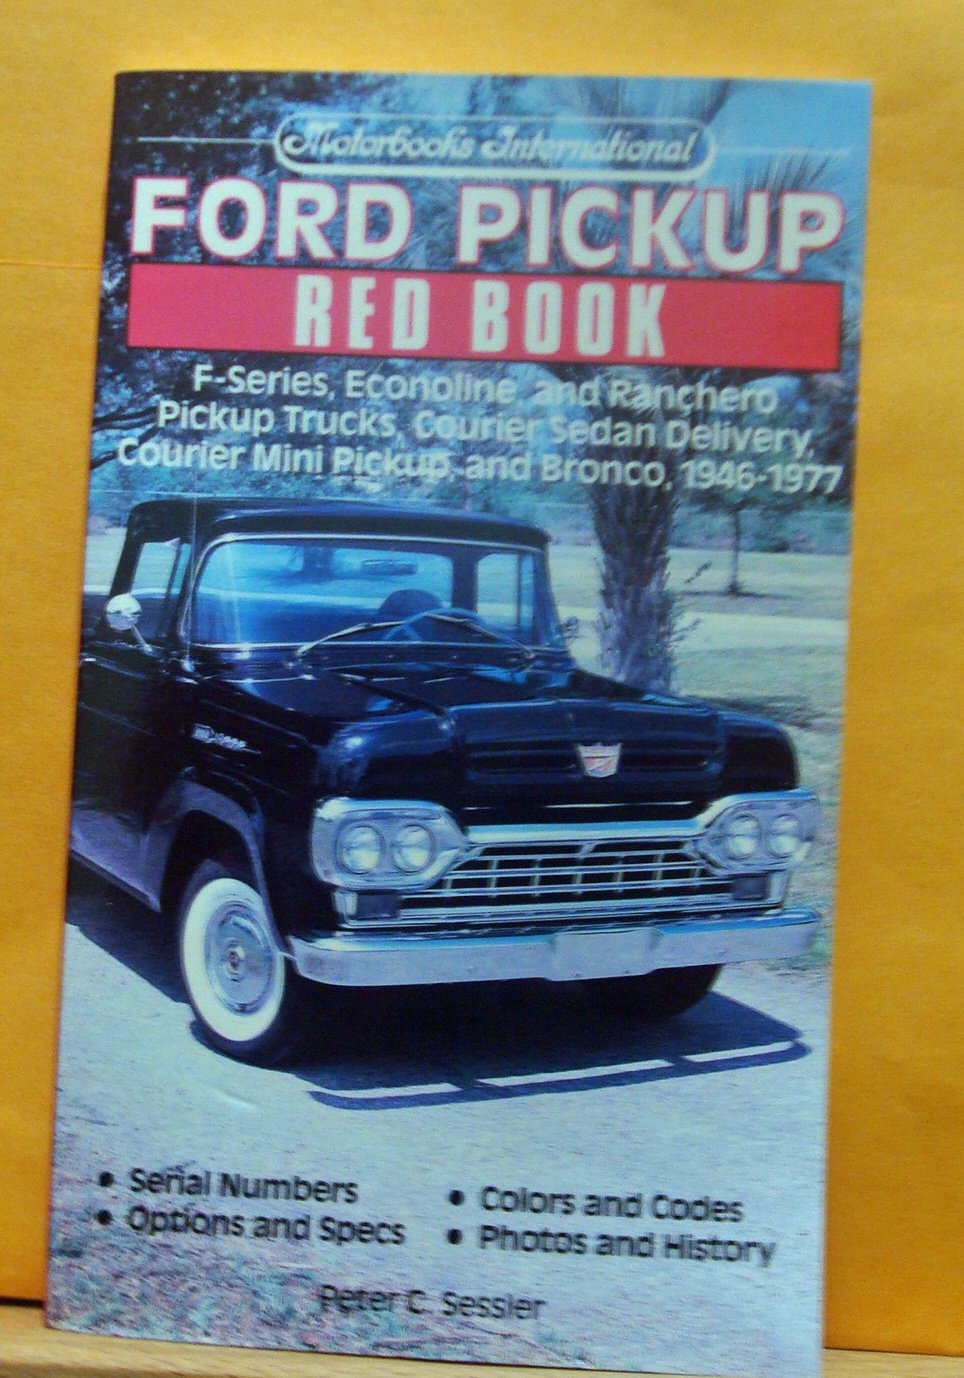 Ford Pickup Red Book 1946-77 (Motorbooks International Red Book